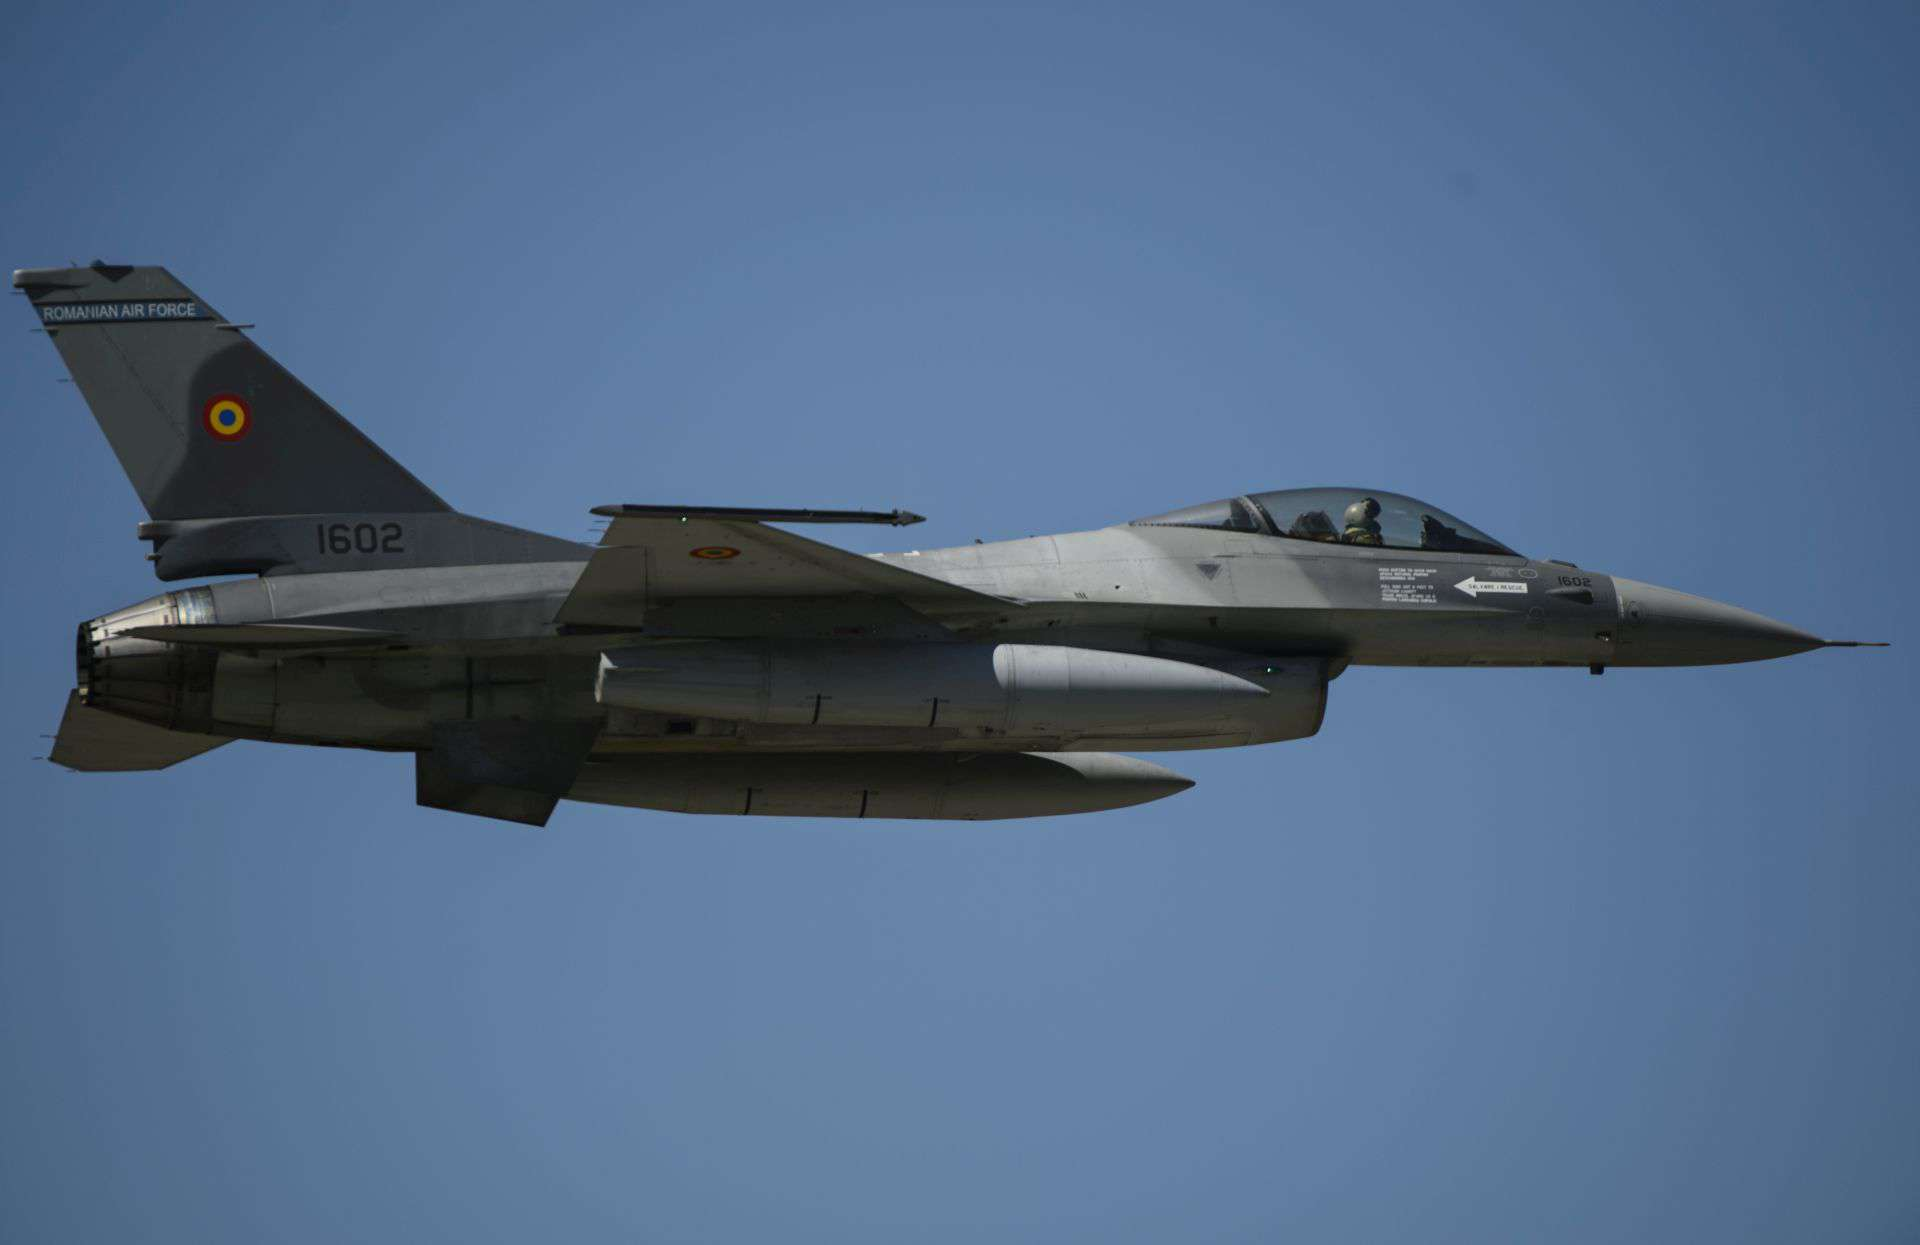 Romanian Air Force F-16 Jet